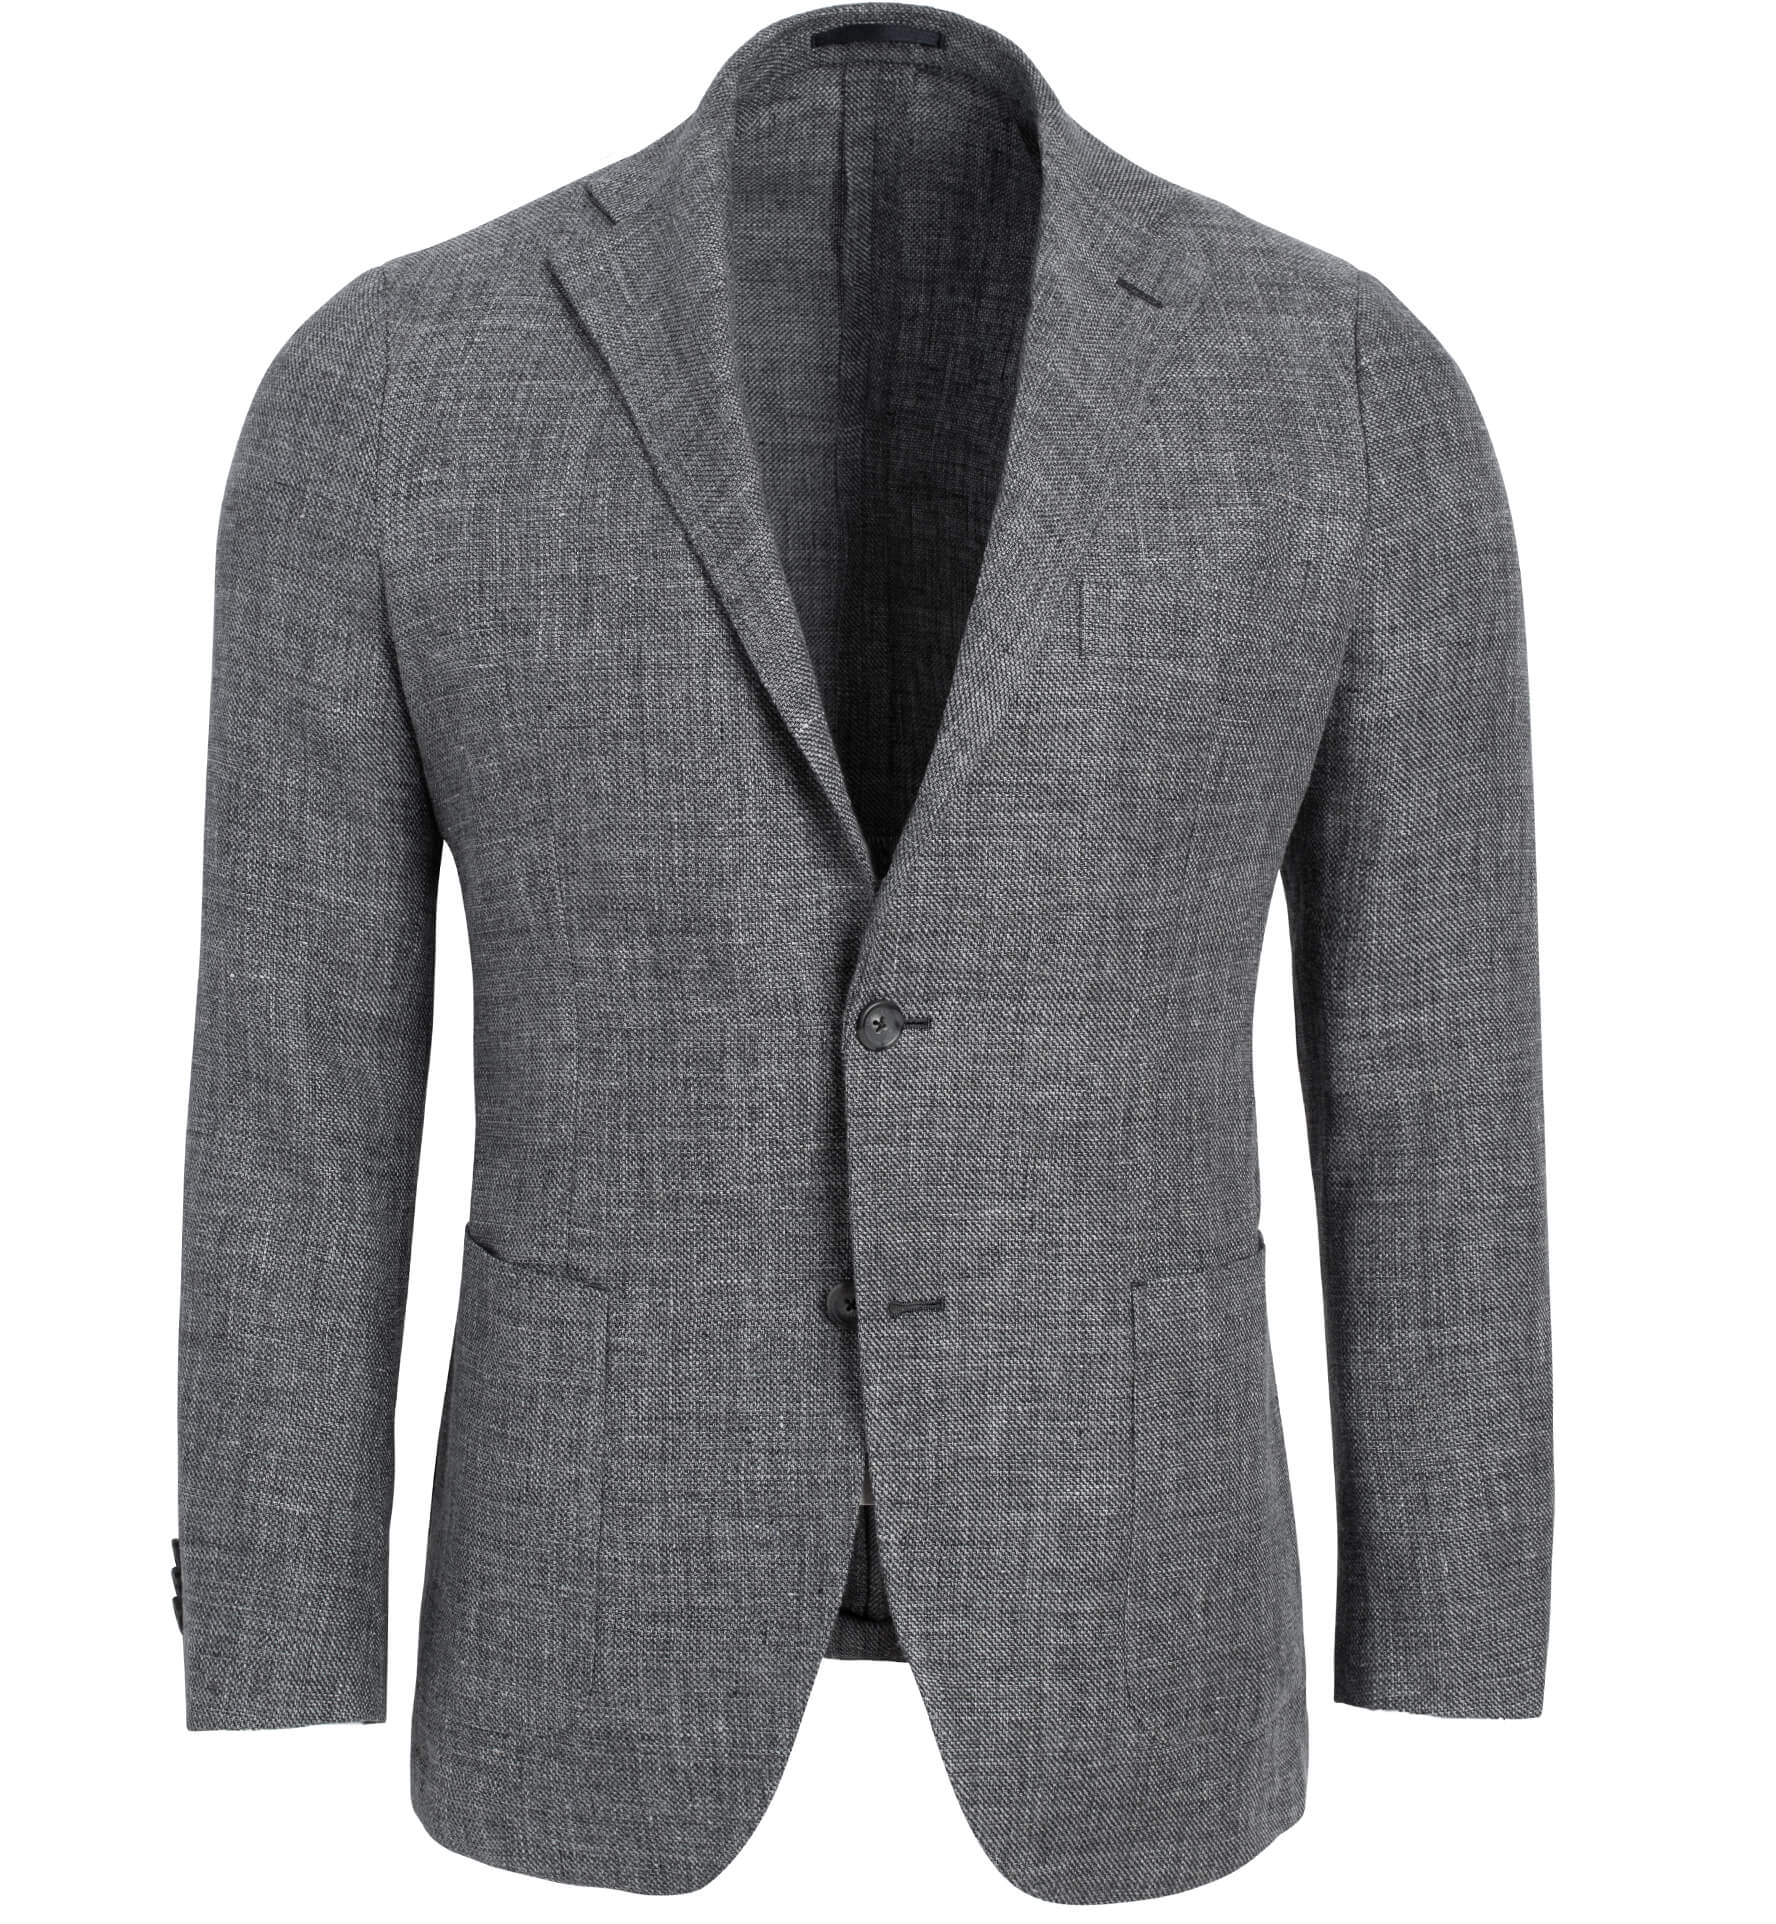 Zoom Image of Bedford Grey Linen and Wool Hopsack Jacket